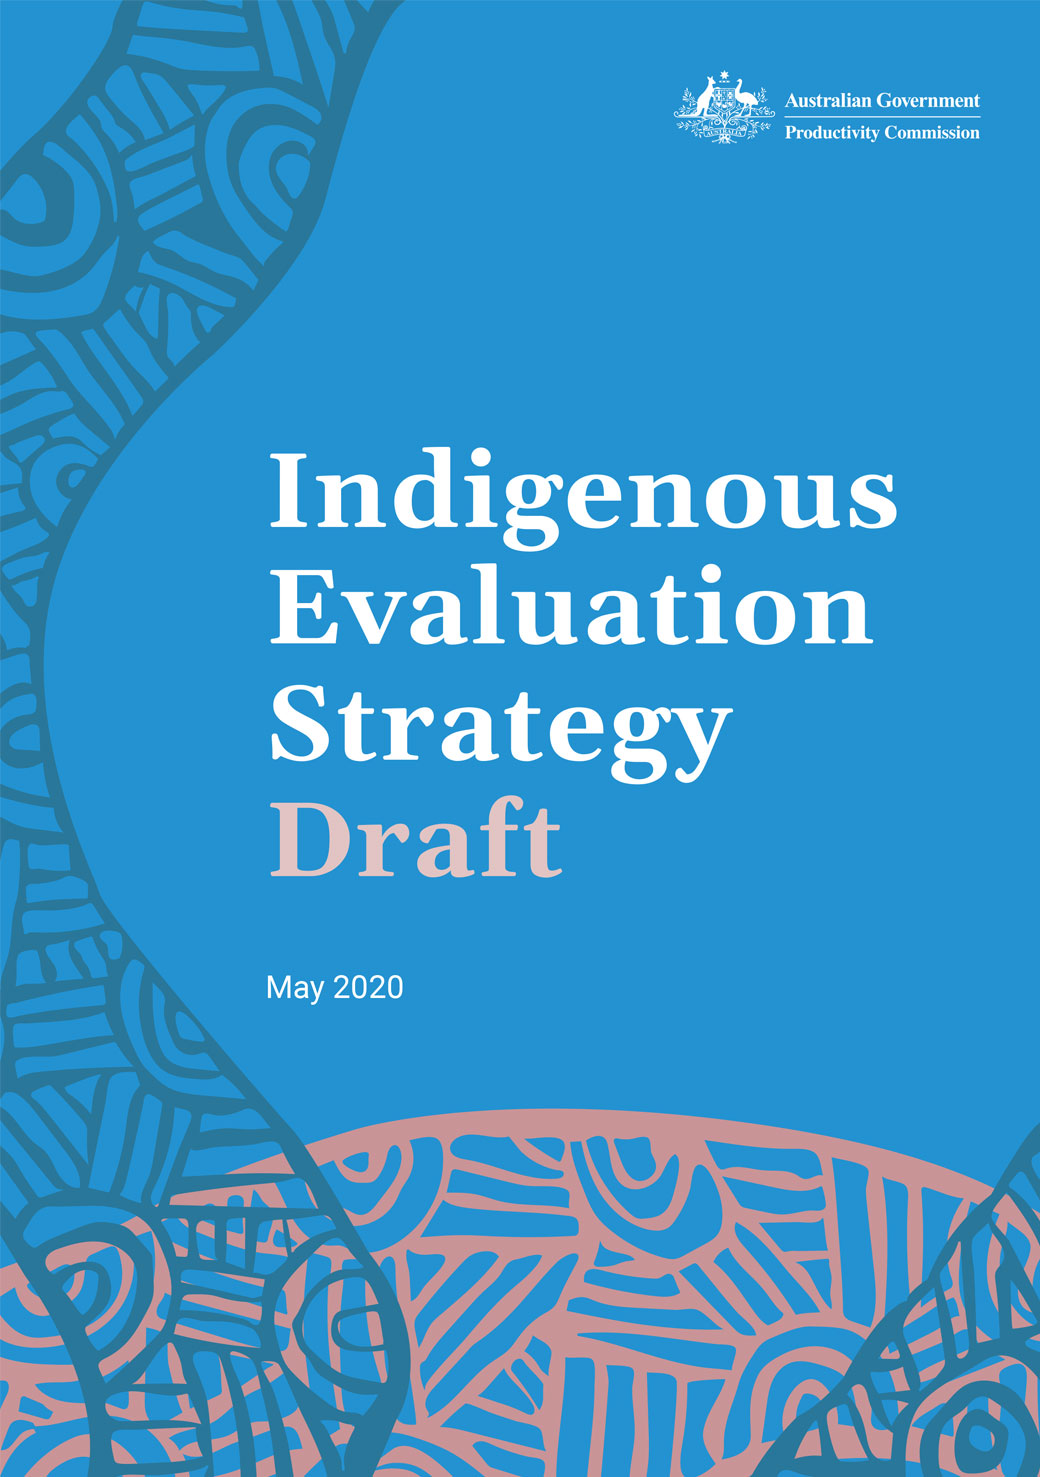 Australian Government Indigenous Evaluation Strategy Draft May 2020